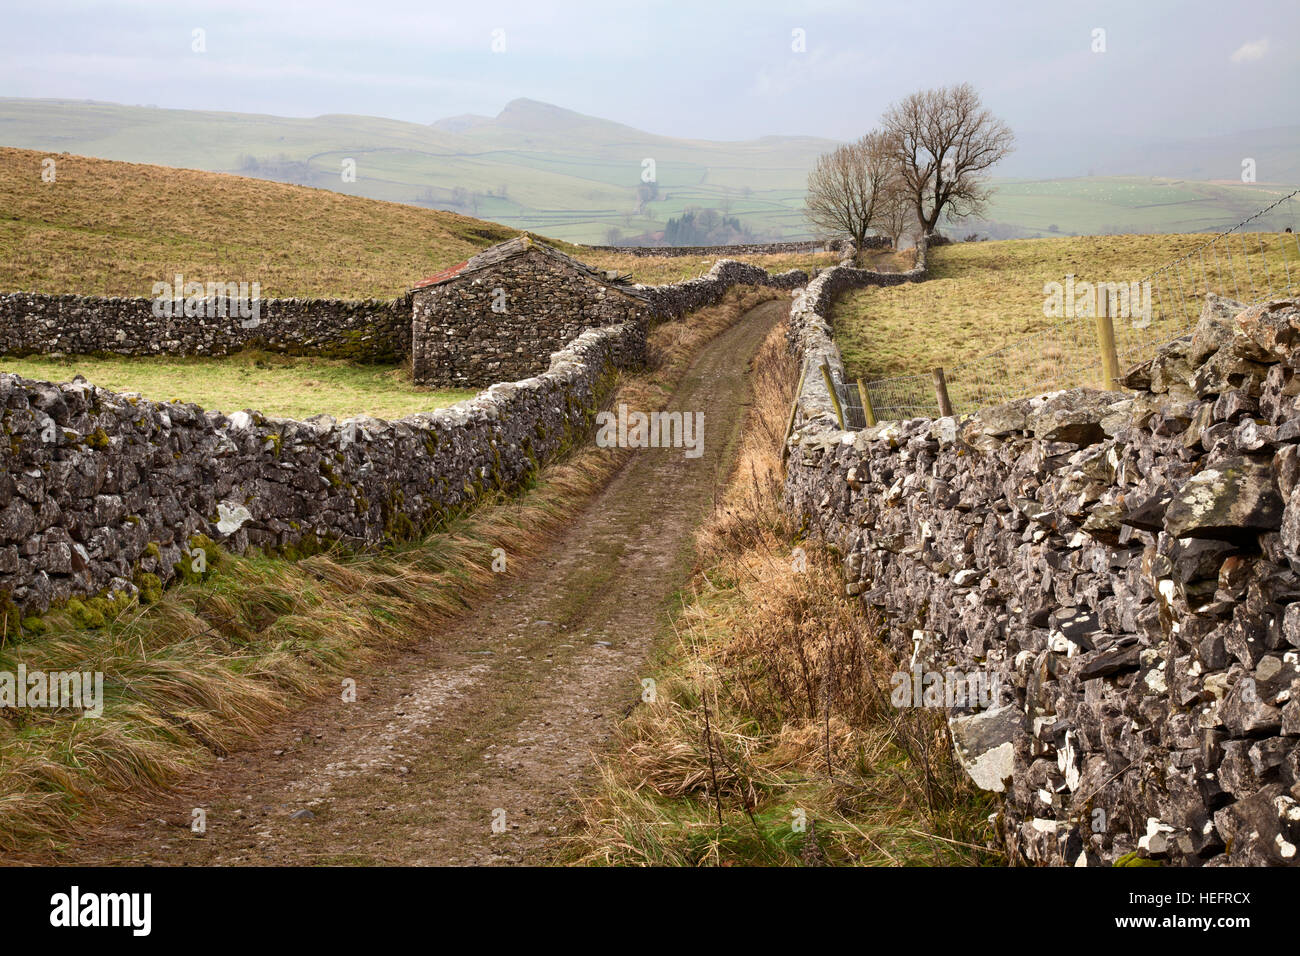 Pennine Bridleway at Stainforth, near Settle, North Yorkshire Dales - Stock Image